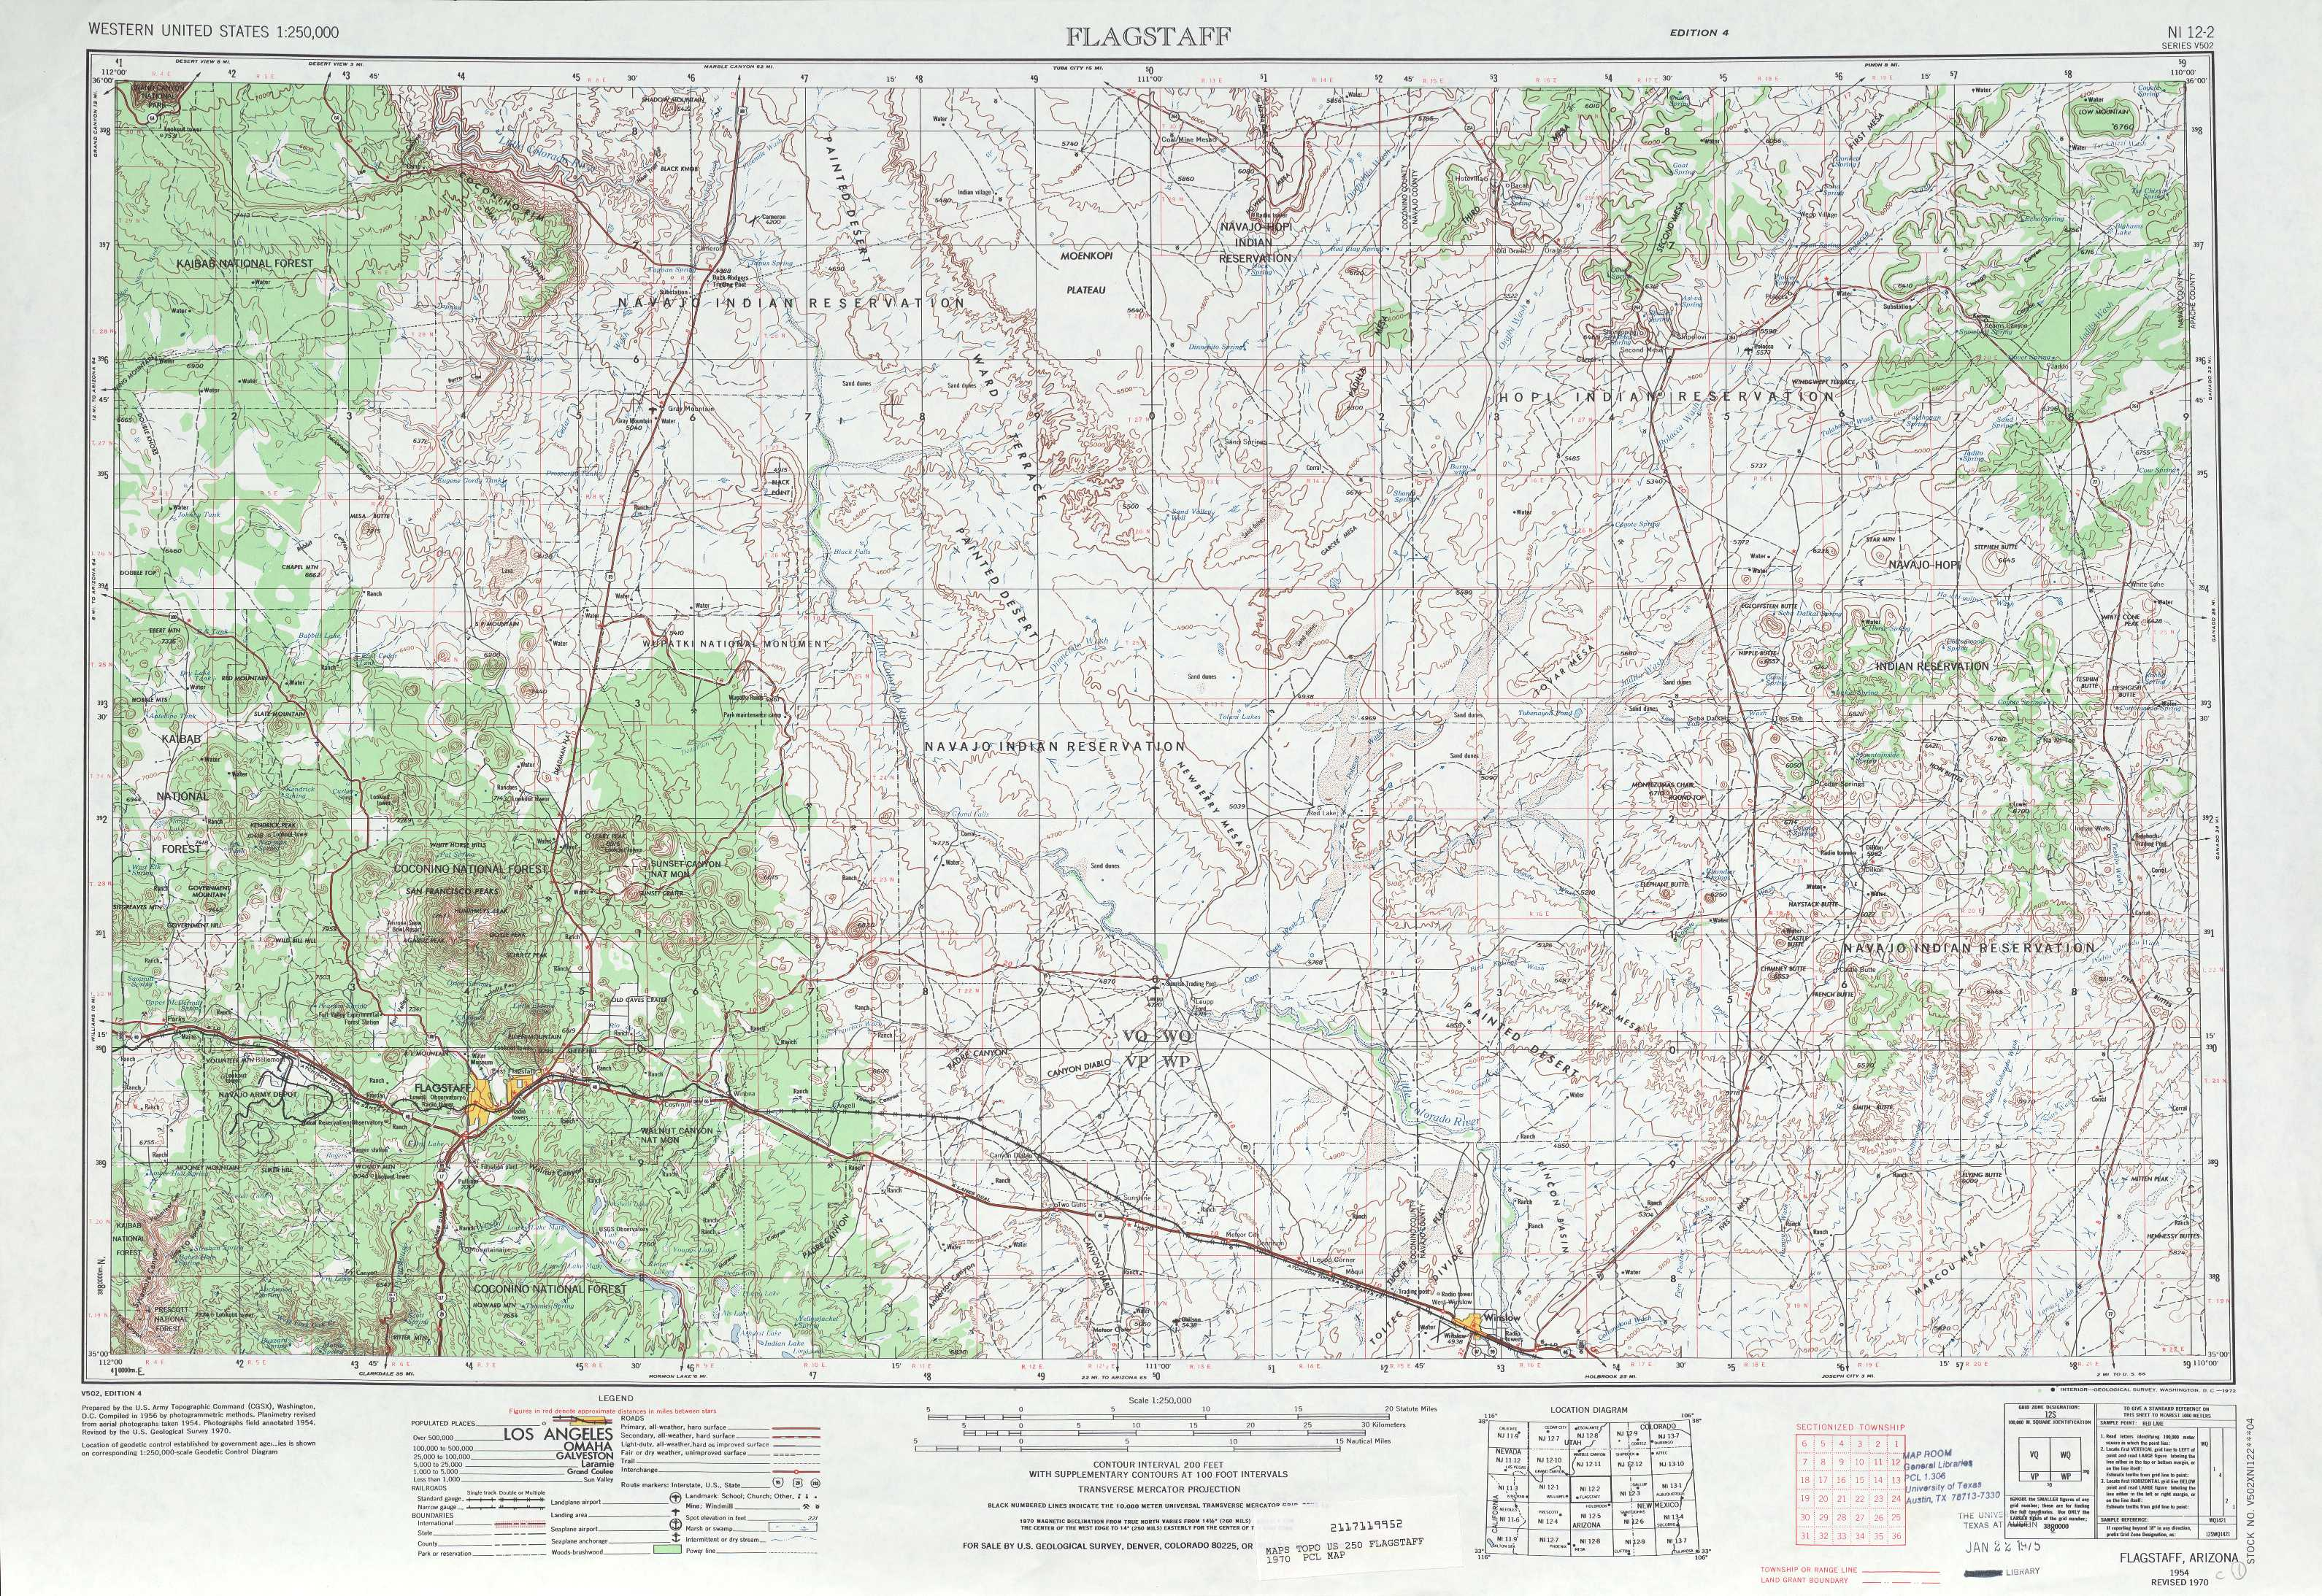 Flagstaff Topographic Maps AZ USGS Topo Quad A At - Arizona topographic map